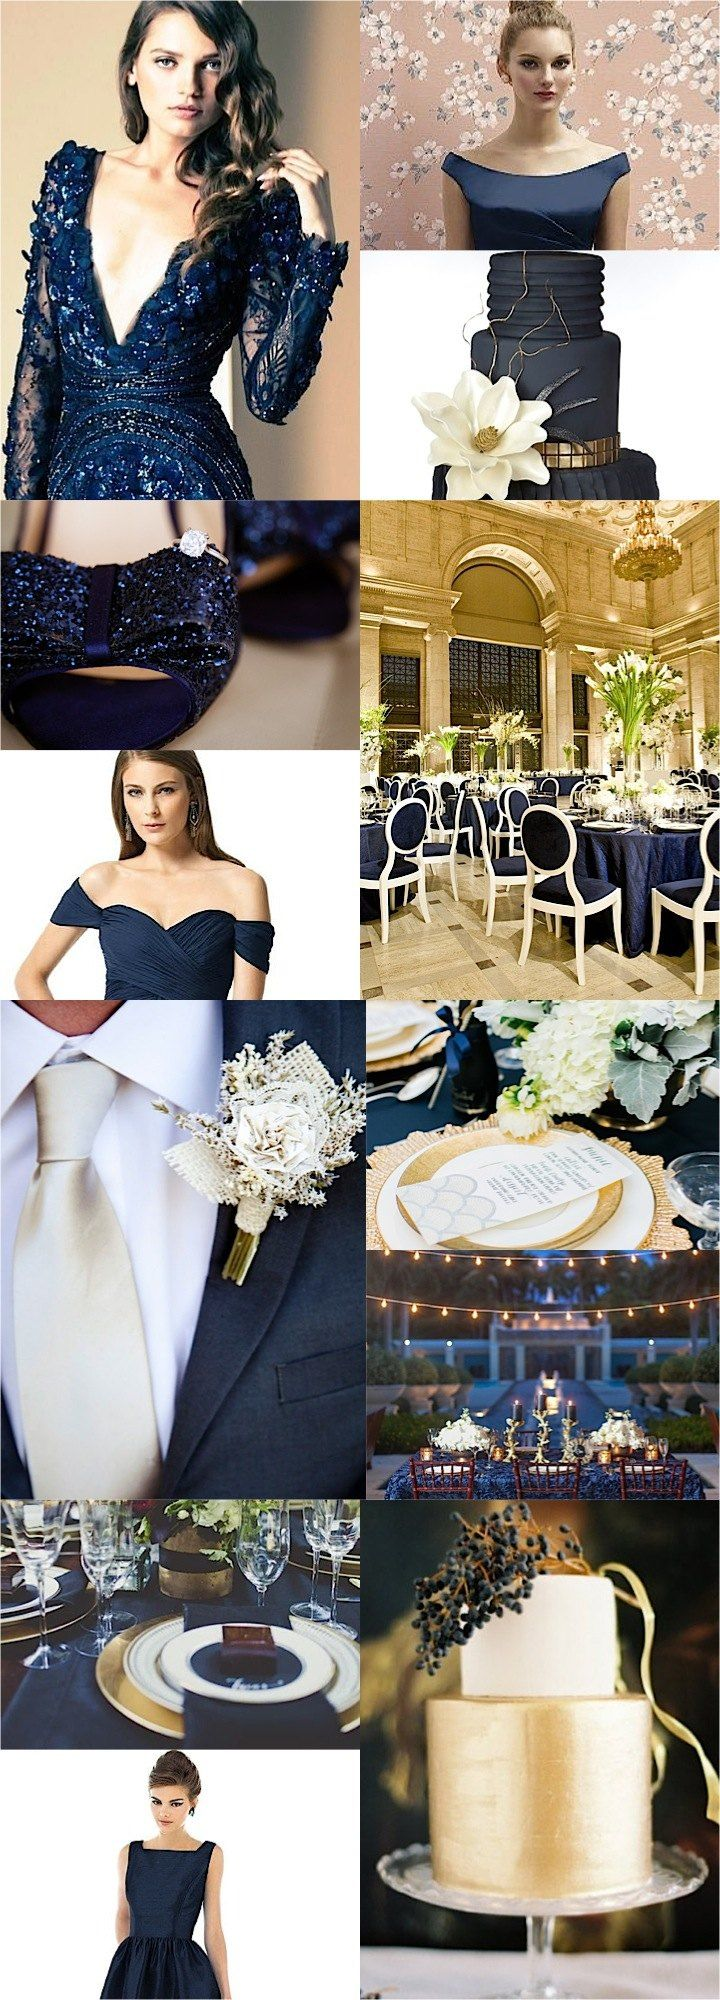 Blue and gold wedding decor   best Must haves images on Pinterest  Wedding ideas Engagements